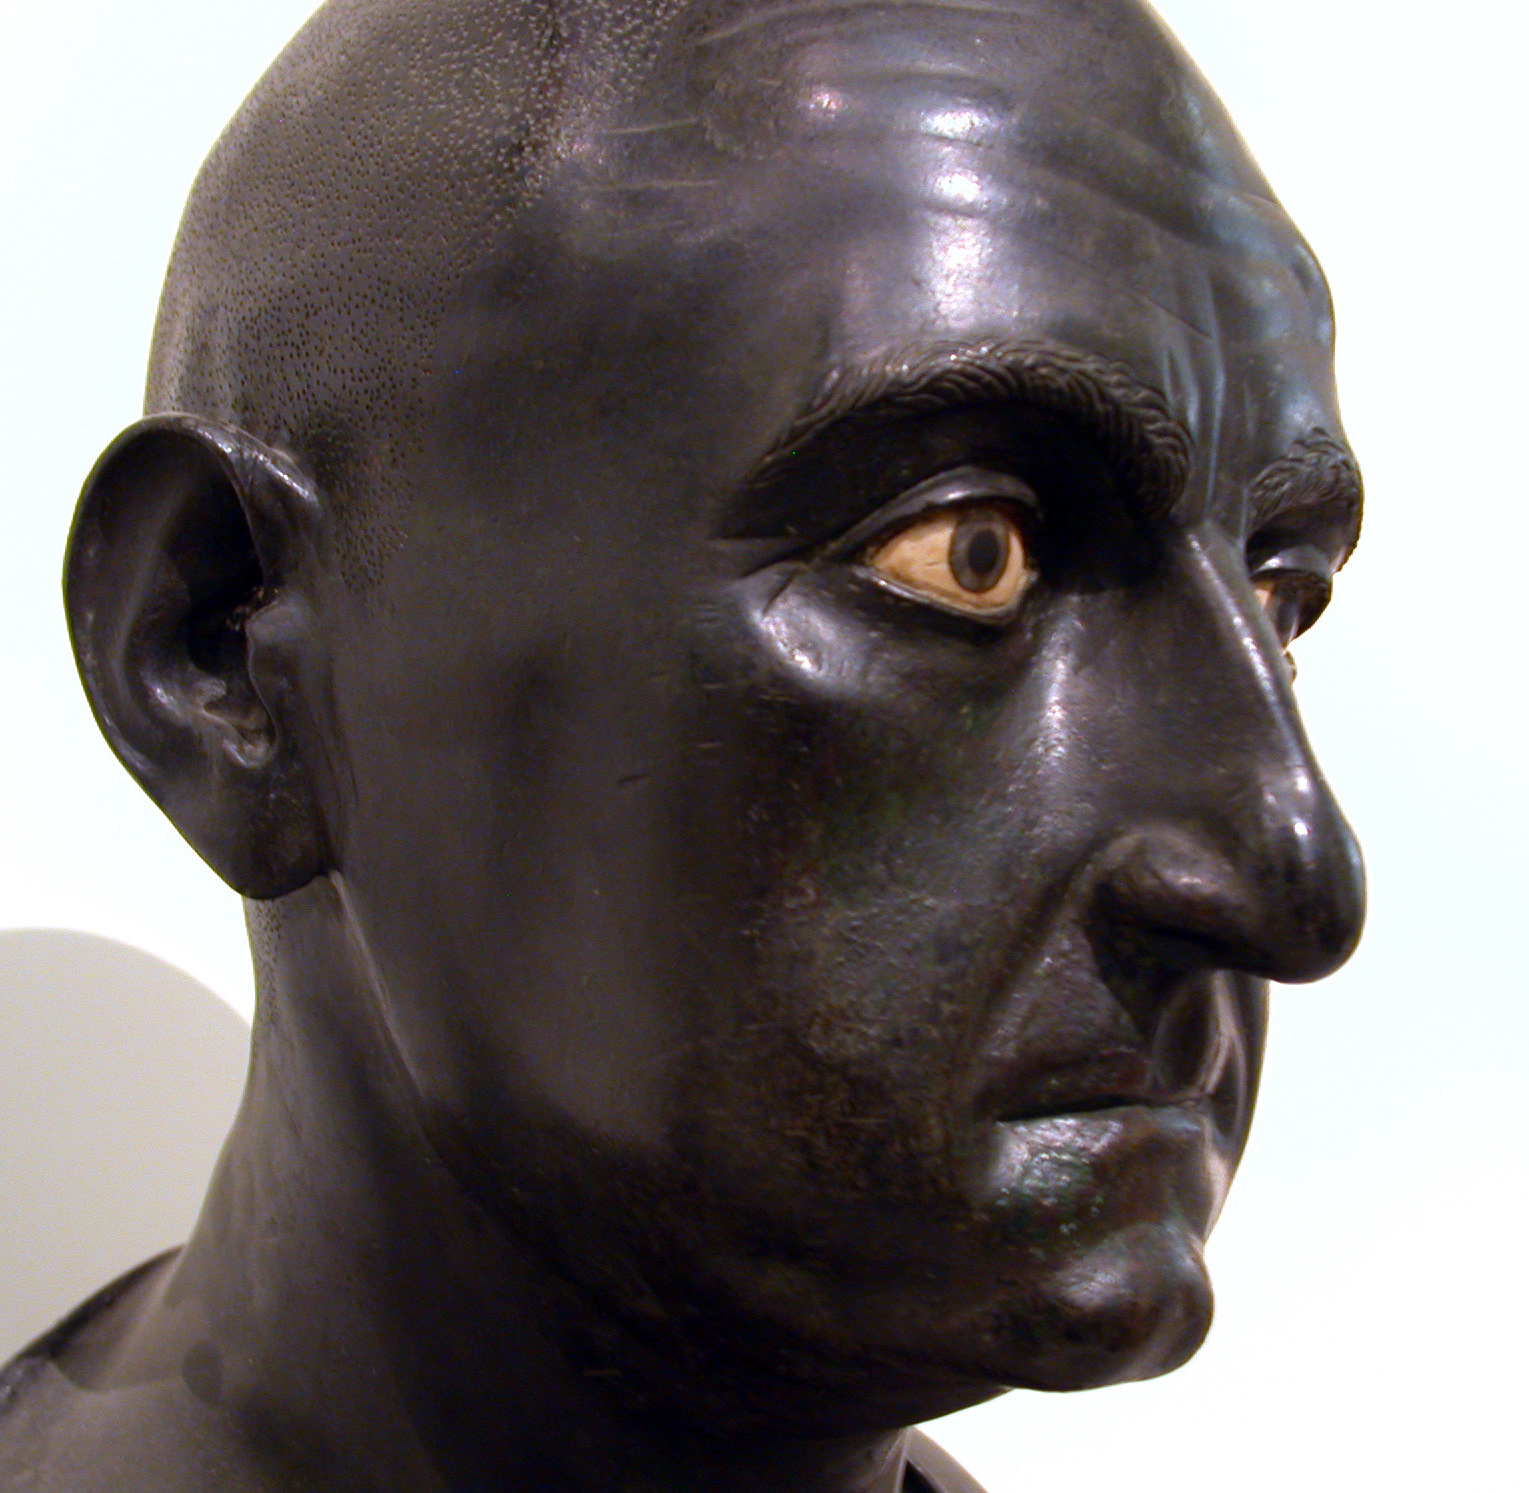 scipio africanus He defeated the carthaginian forces in spain in 209 bc elected consul in 205 bc, he invaded north africa with a volunteer army and defeated hannibal at zama in 202 bc, earning the honorary surname africanus.